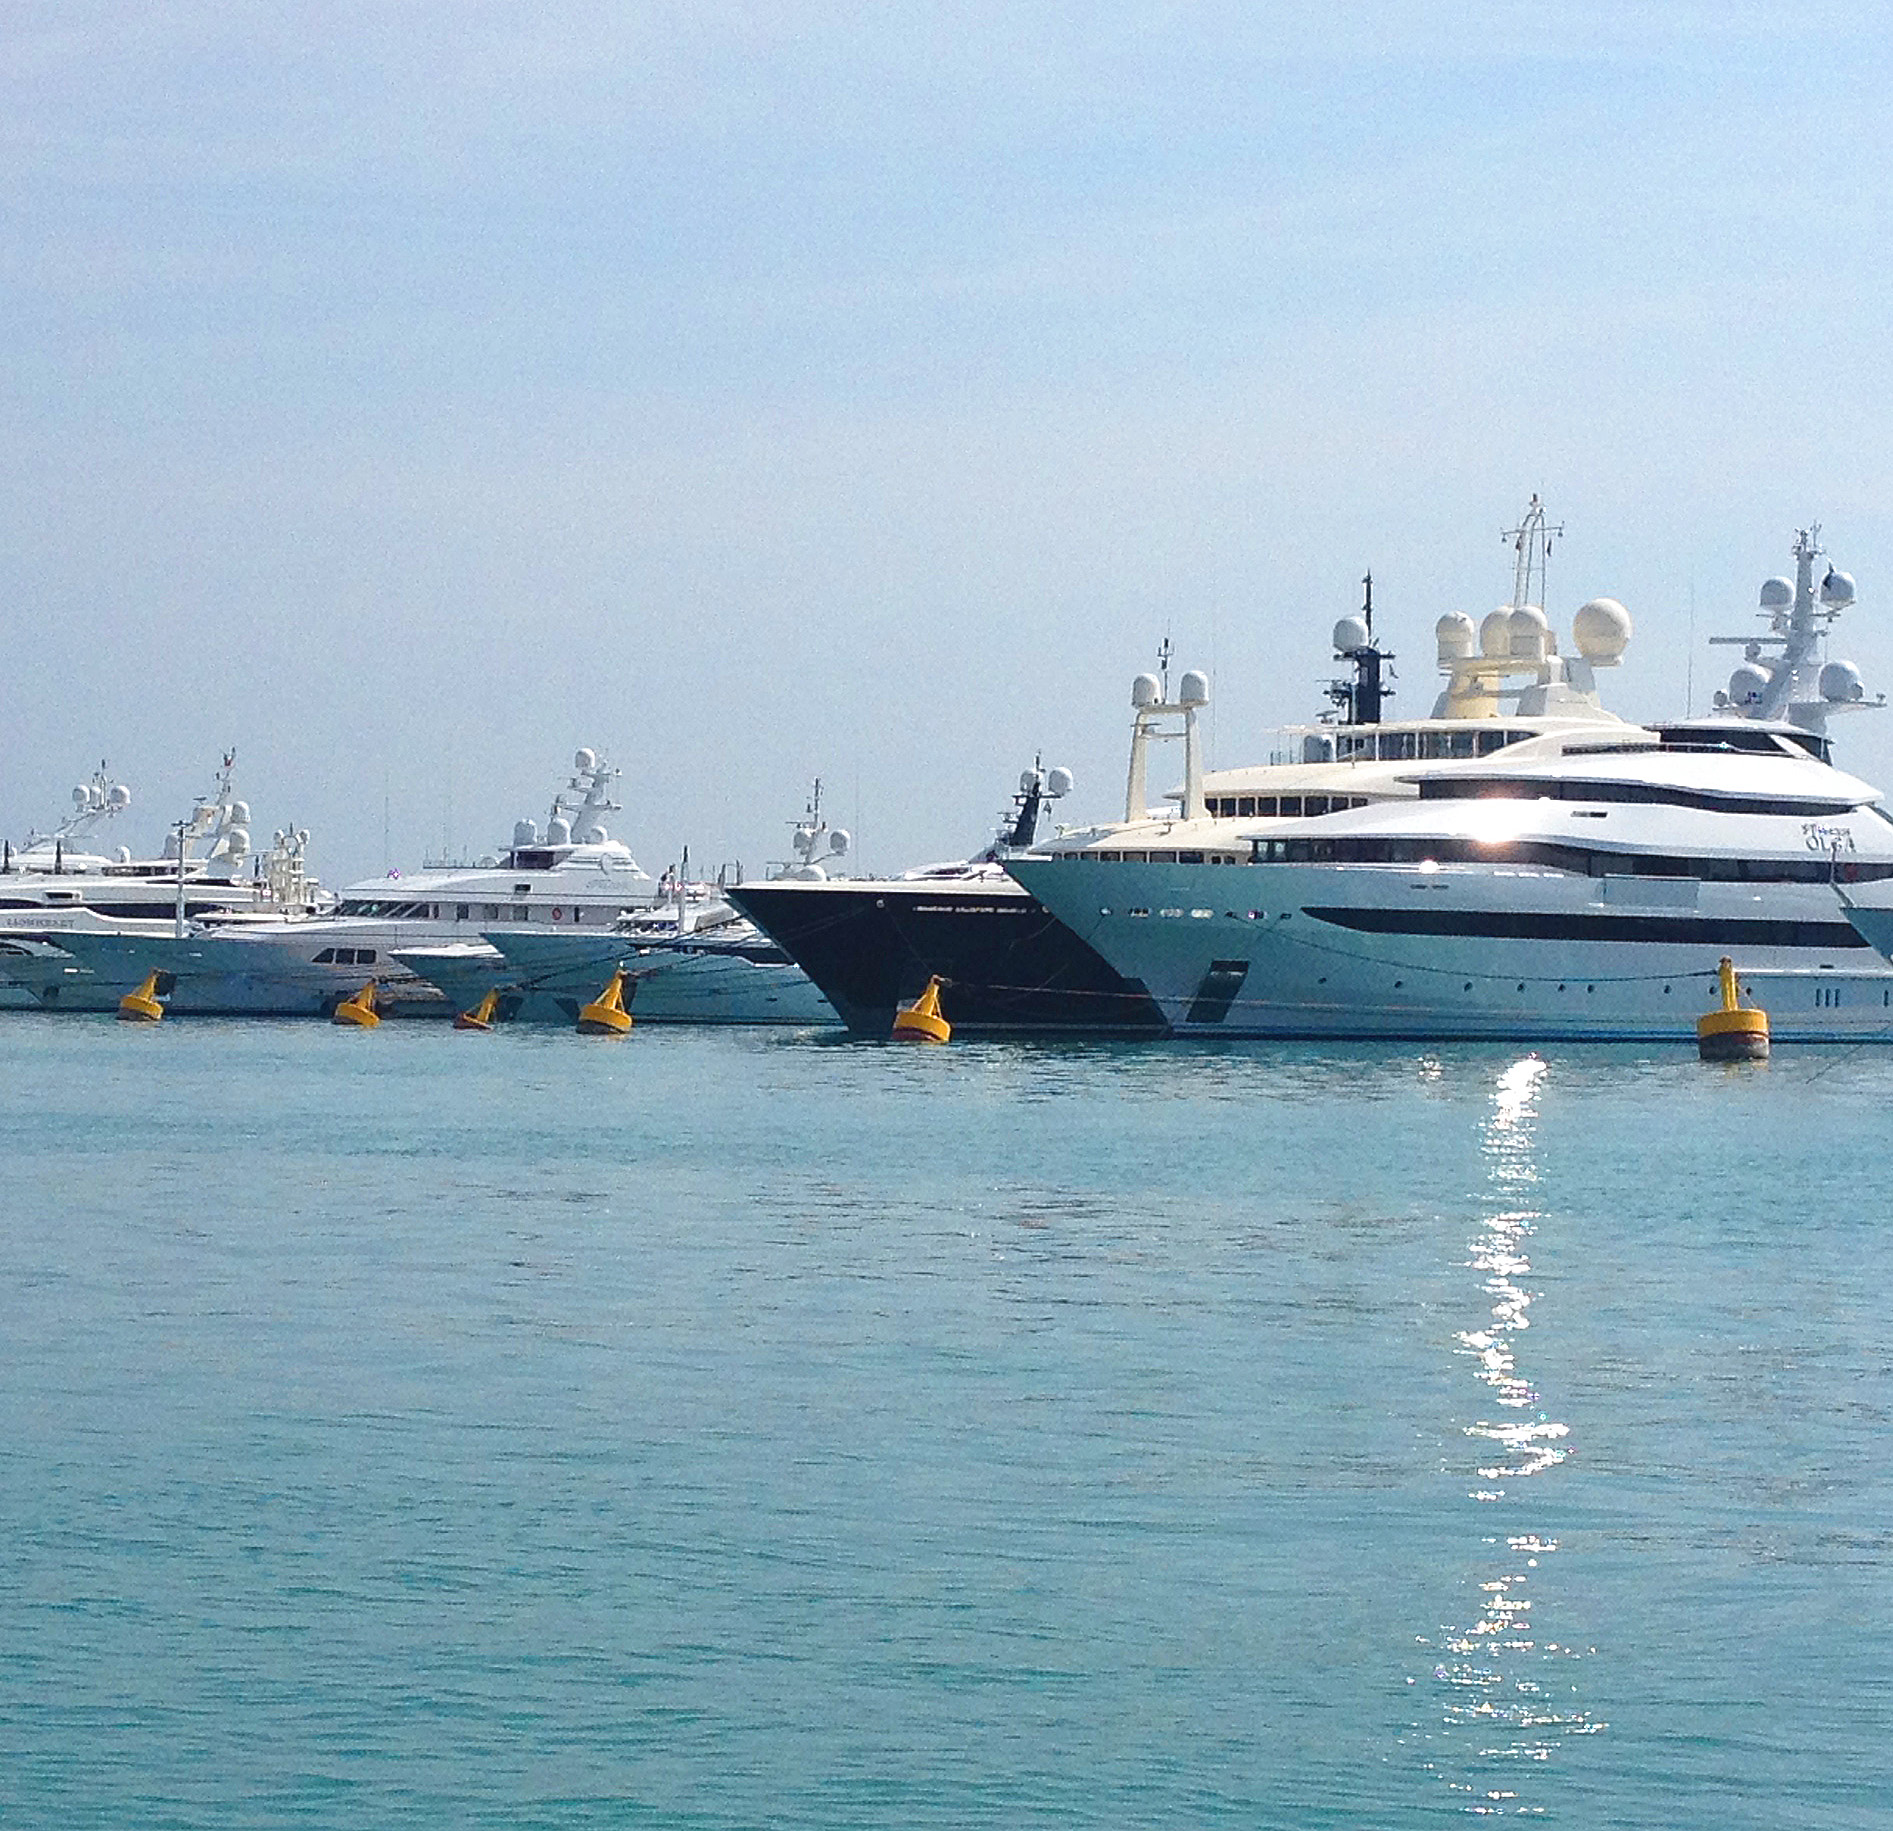 Superyacht berths on Berth For Yacht